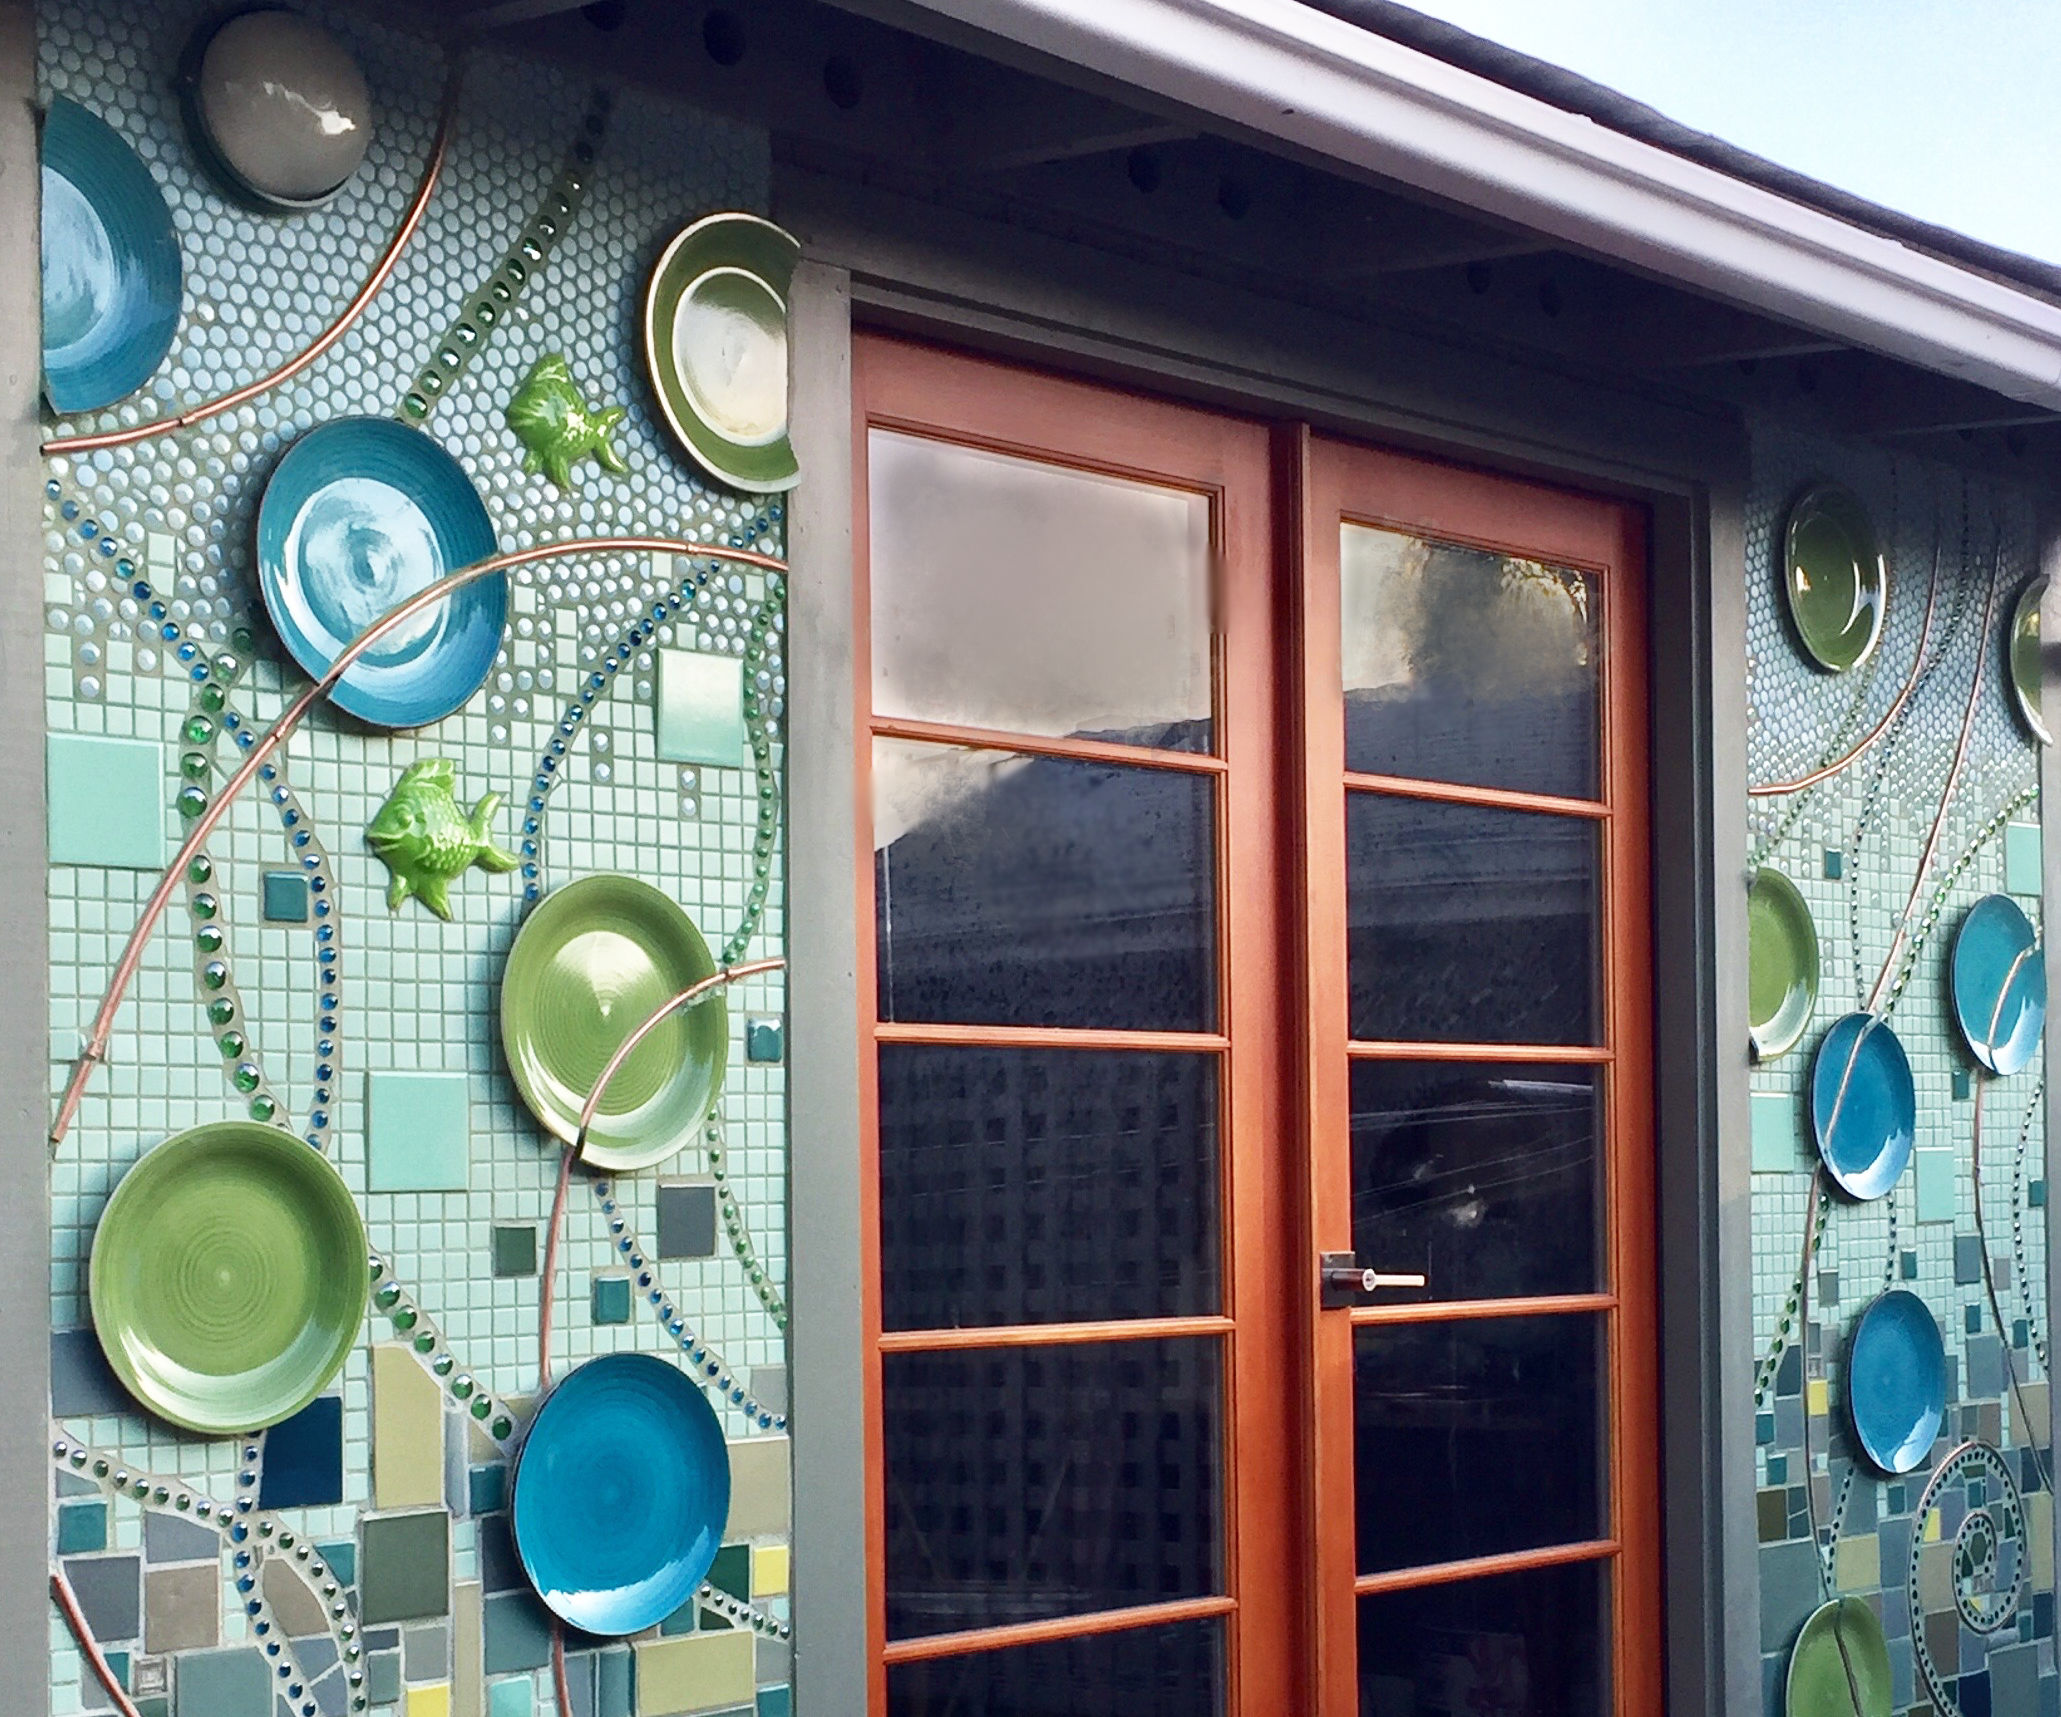 Outdoor Tiled Wall